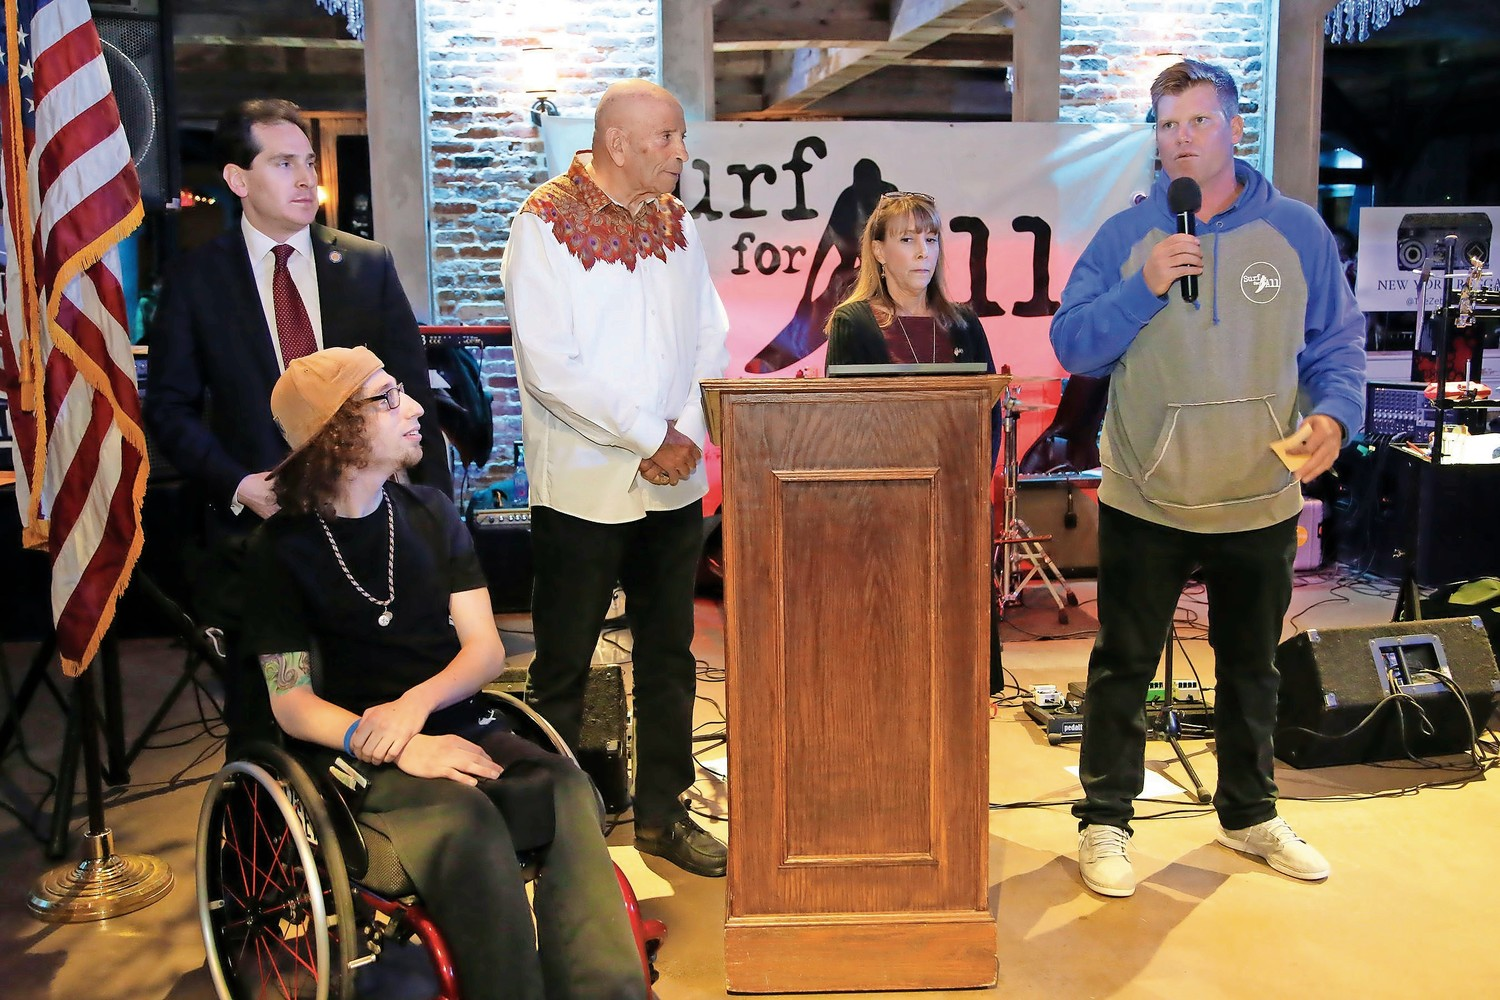 "Dylan ""The Surfing Samurai"" Hronec, far left, State Sen. Todd Kaminisy, former state Assemblyman Harvey Weisenberg, Assemblywoman Missy Miller, and Surf for All Co-founder Cliff Skudin at the April 20 Surf for All fundraiser at The Loft in Island Park, where Skudin thanked supporters."